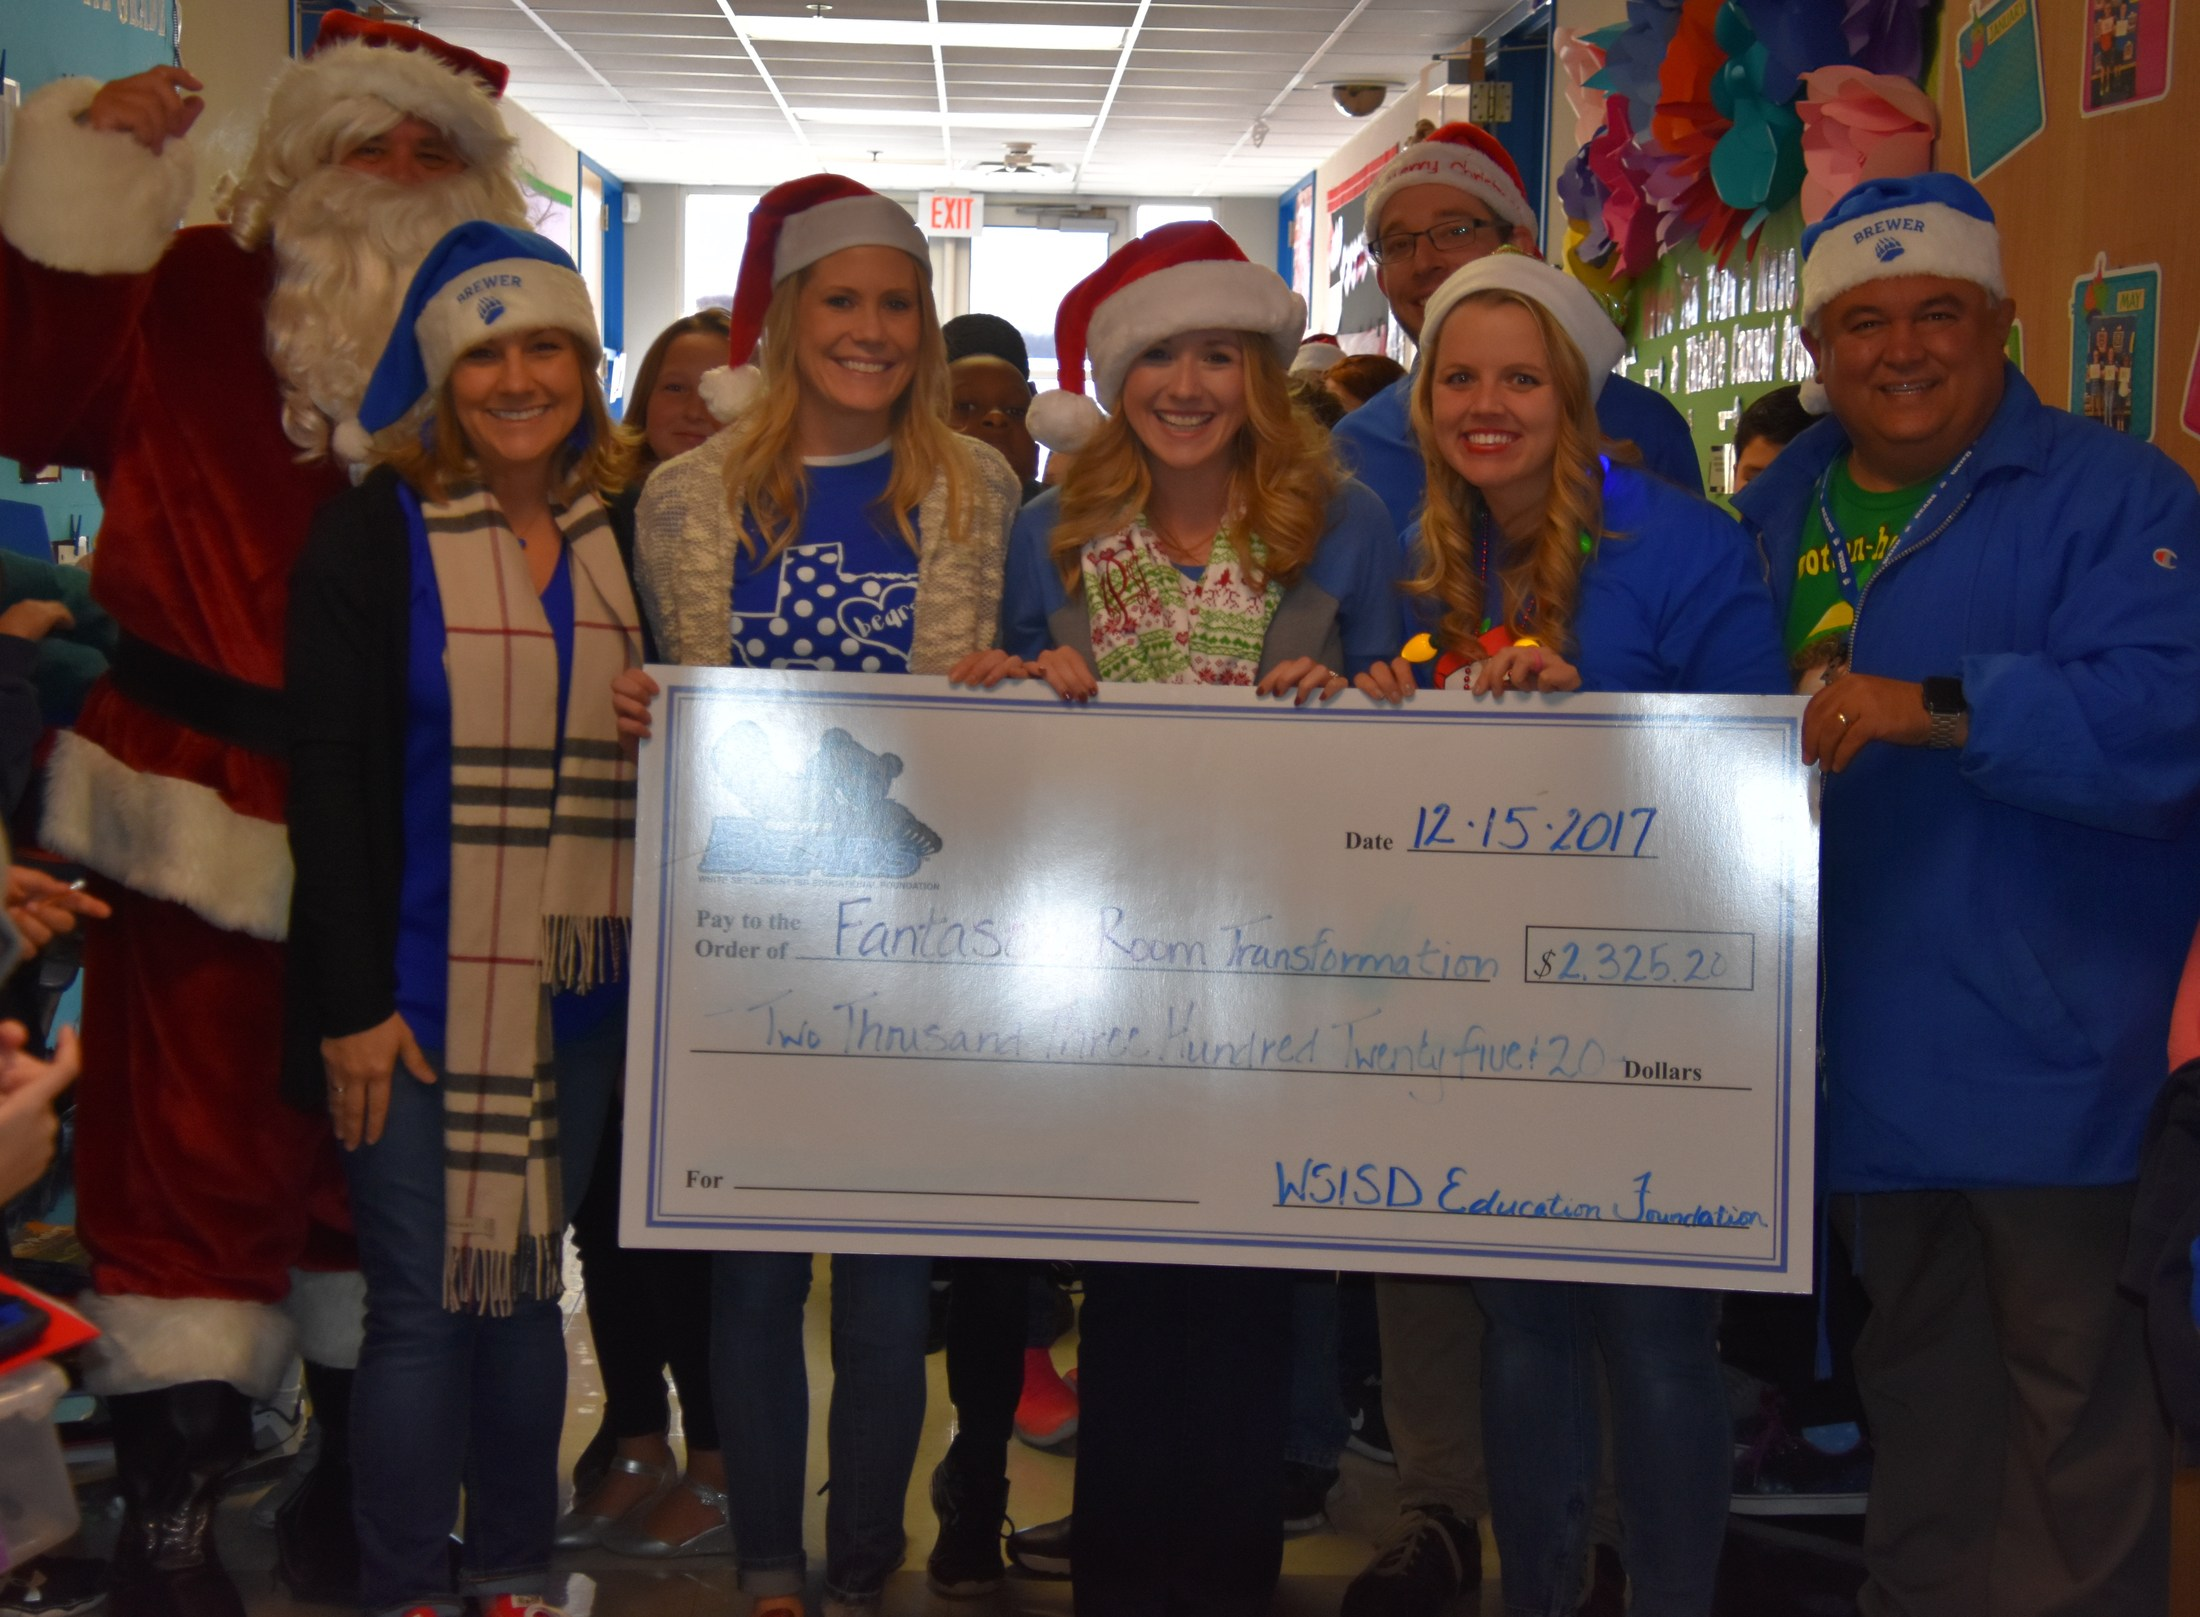 Blue Haze Elementary teachers Alden Gideon, Maegan Perryman and Lindsey Vinson received a $2325.20 grant for Fantastic Room Transformations.